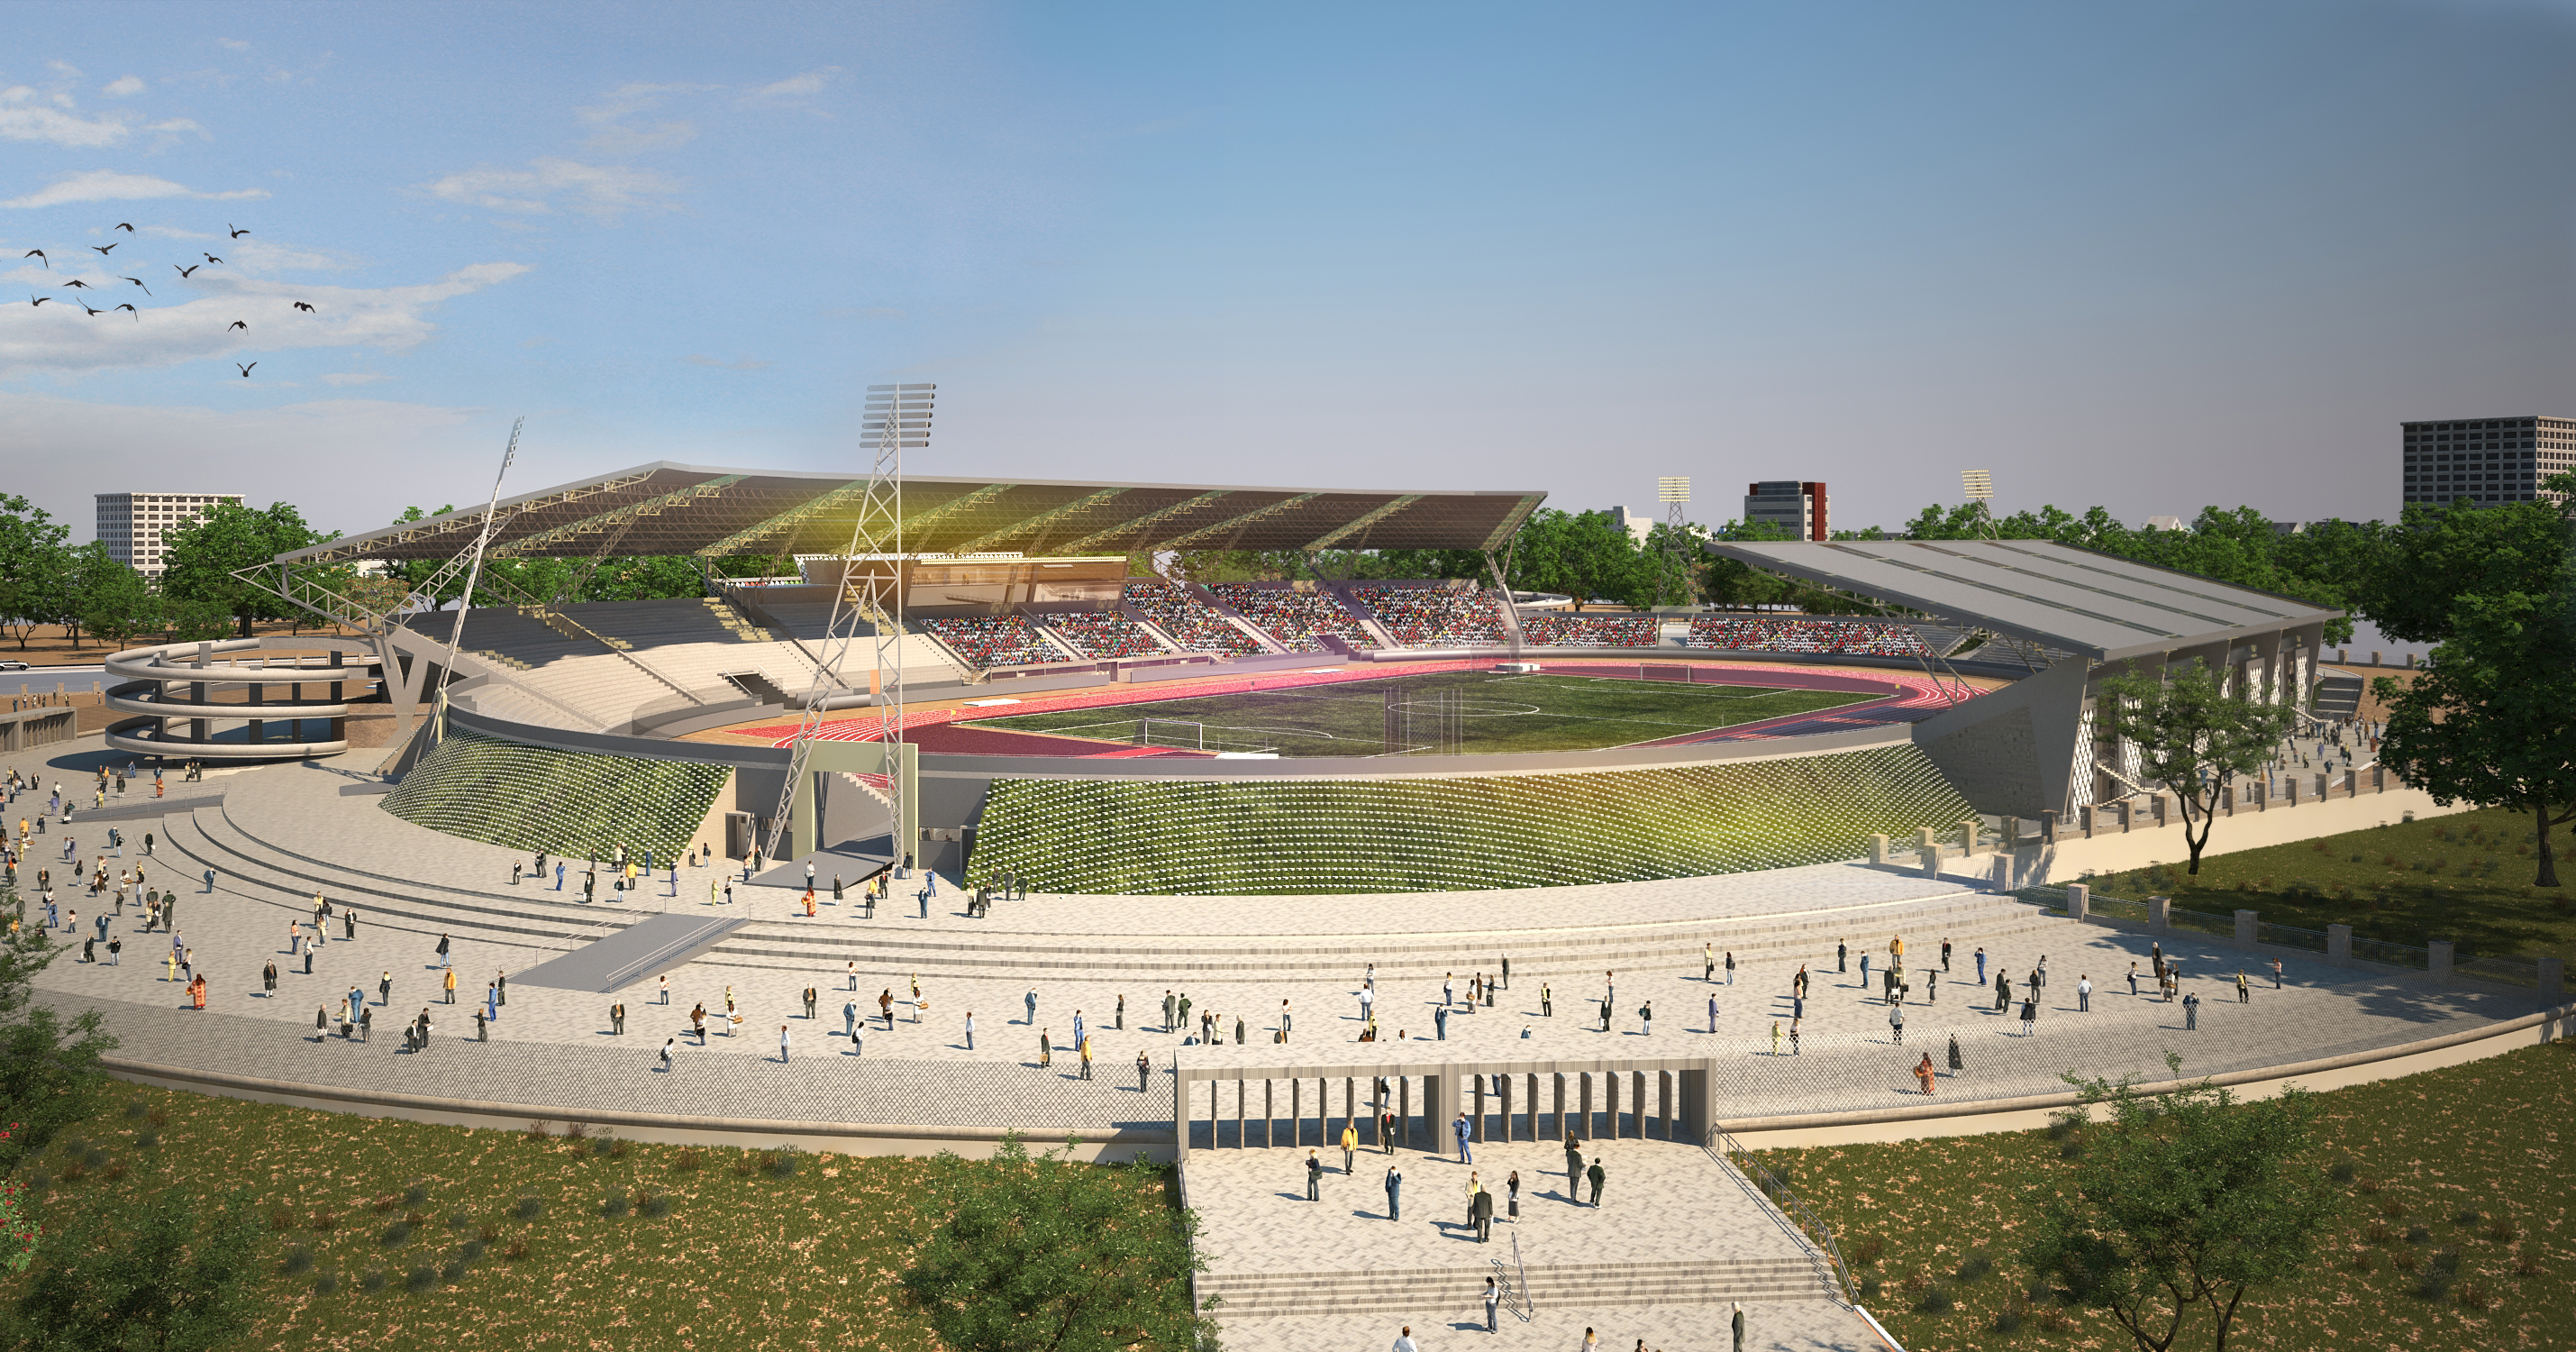 Kipchoge Stadium Phase 2